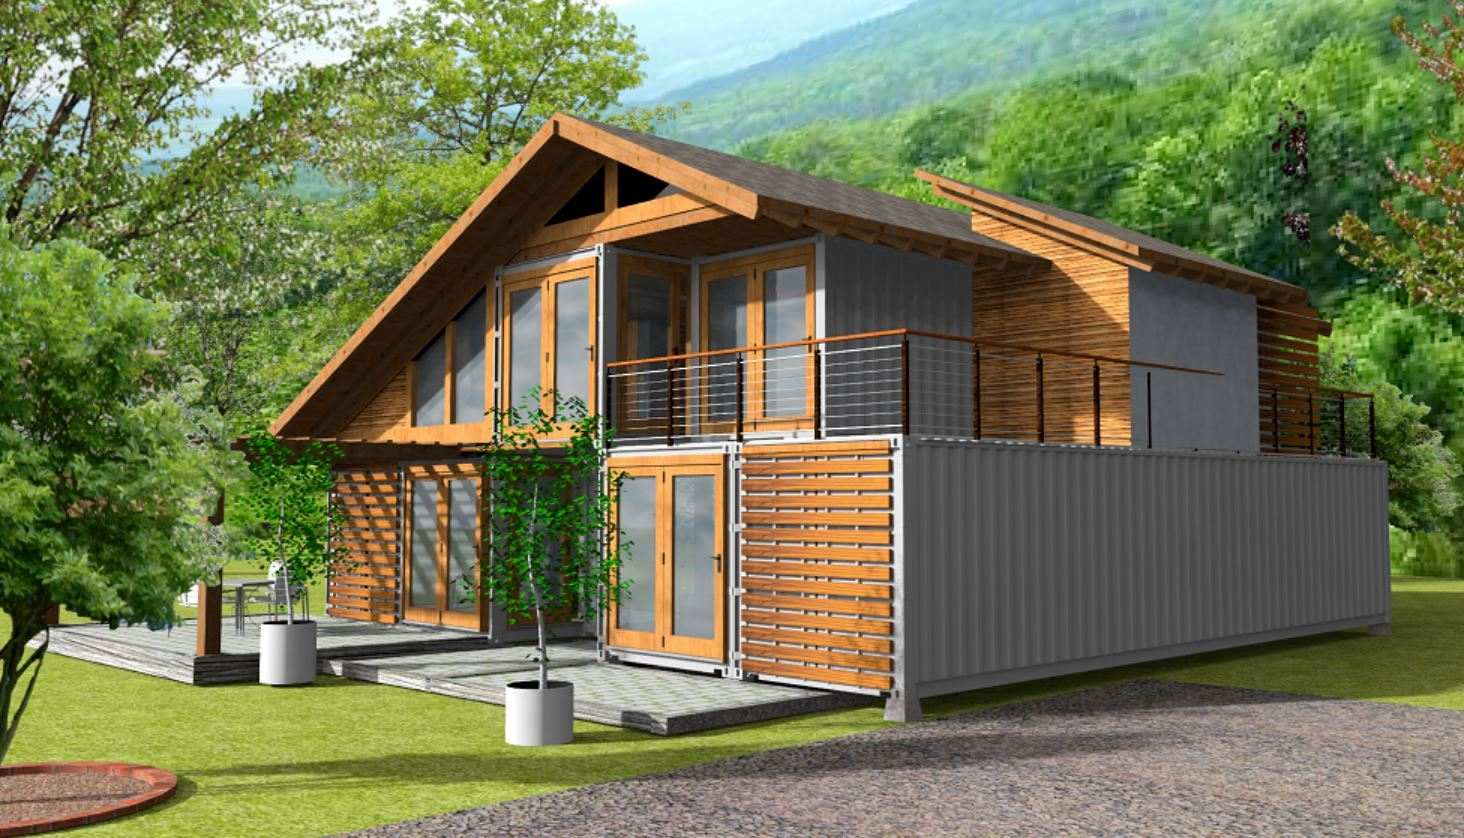 3 bedroom shipping container design — barnett adler